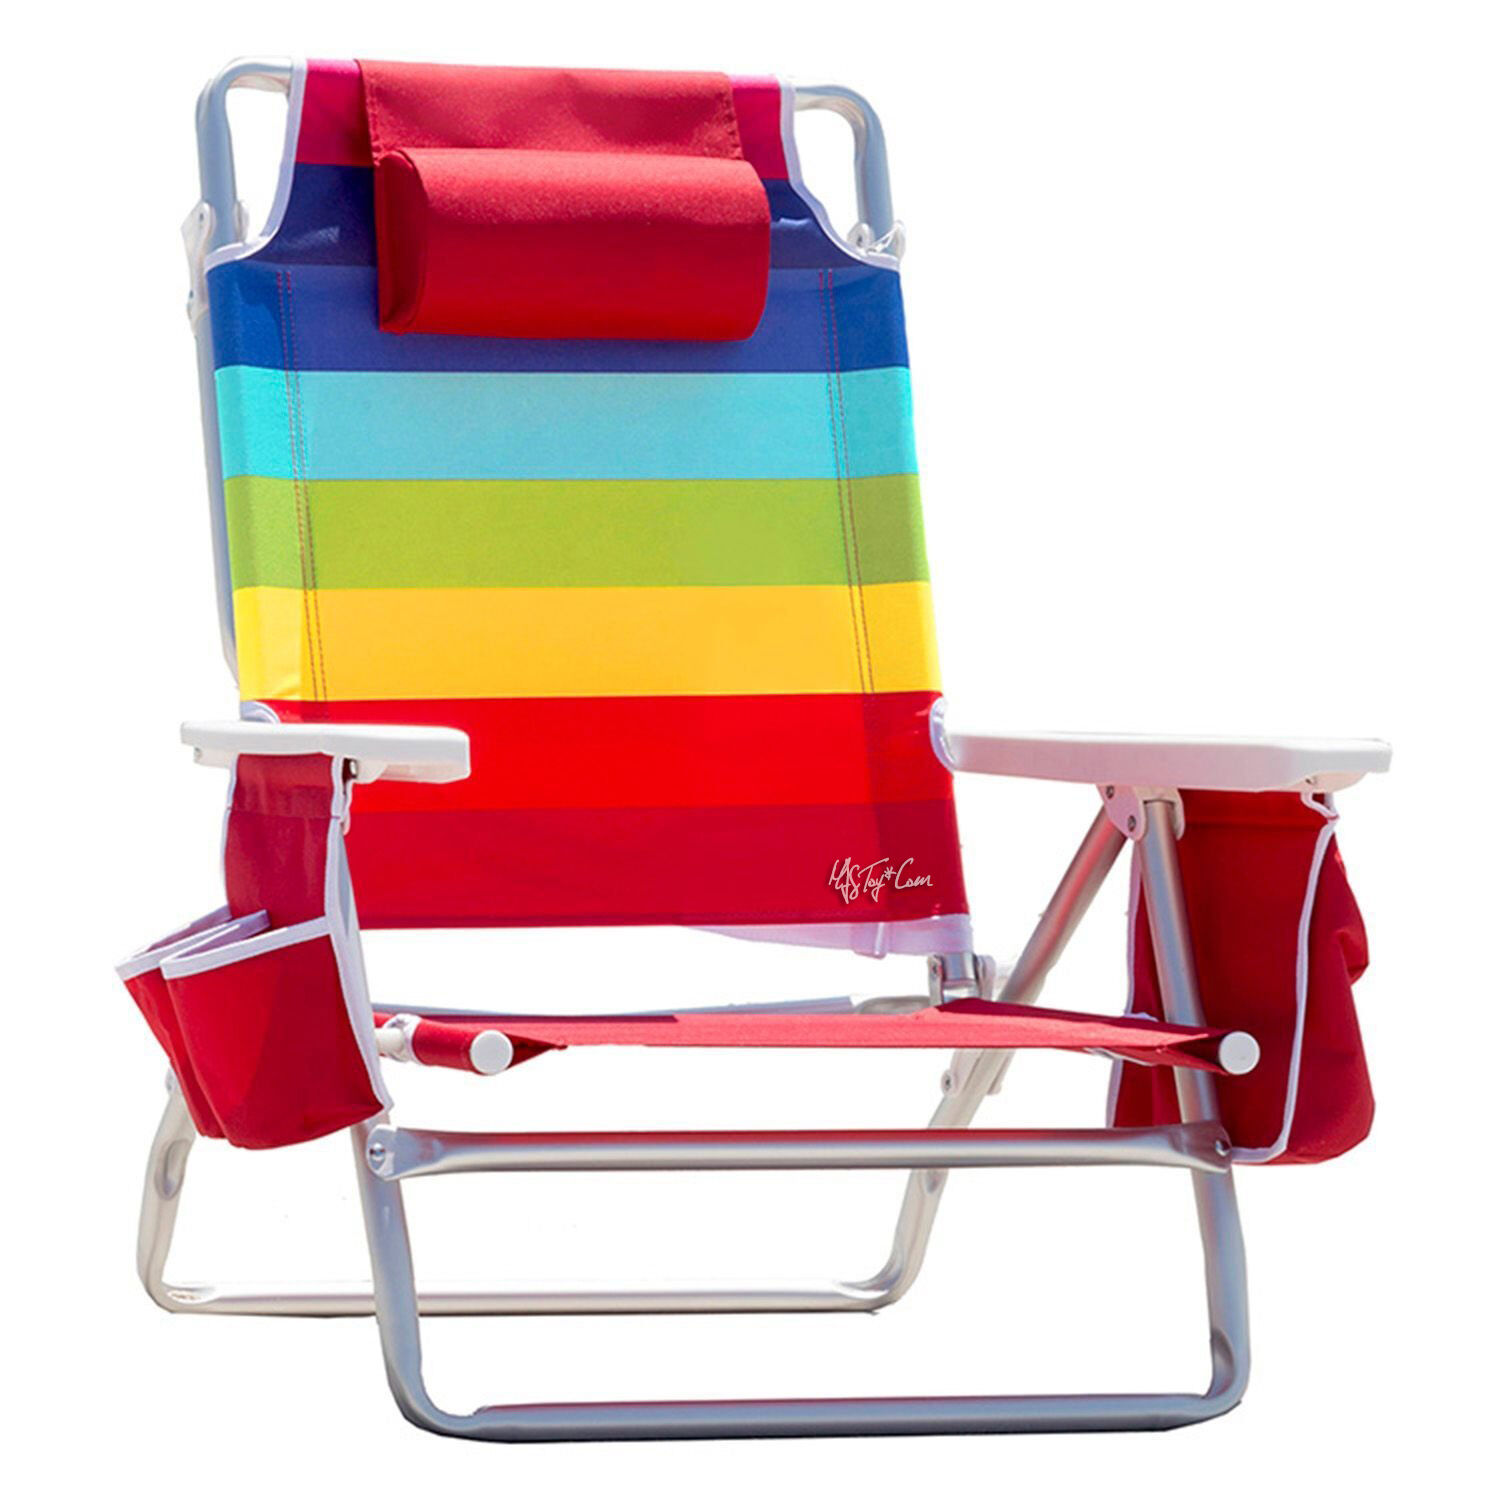 Nautica Beach Chair With Cooler & Cup Holder Rainbow Color 5